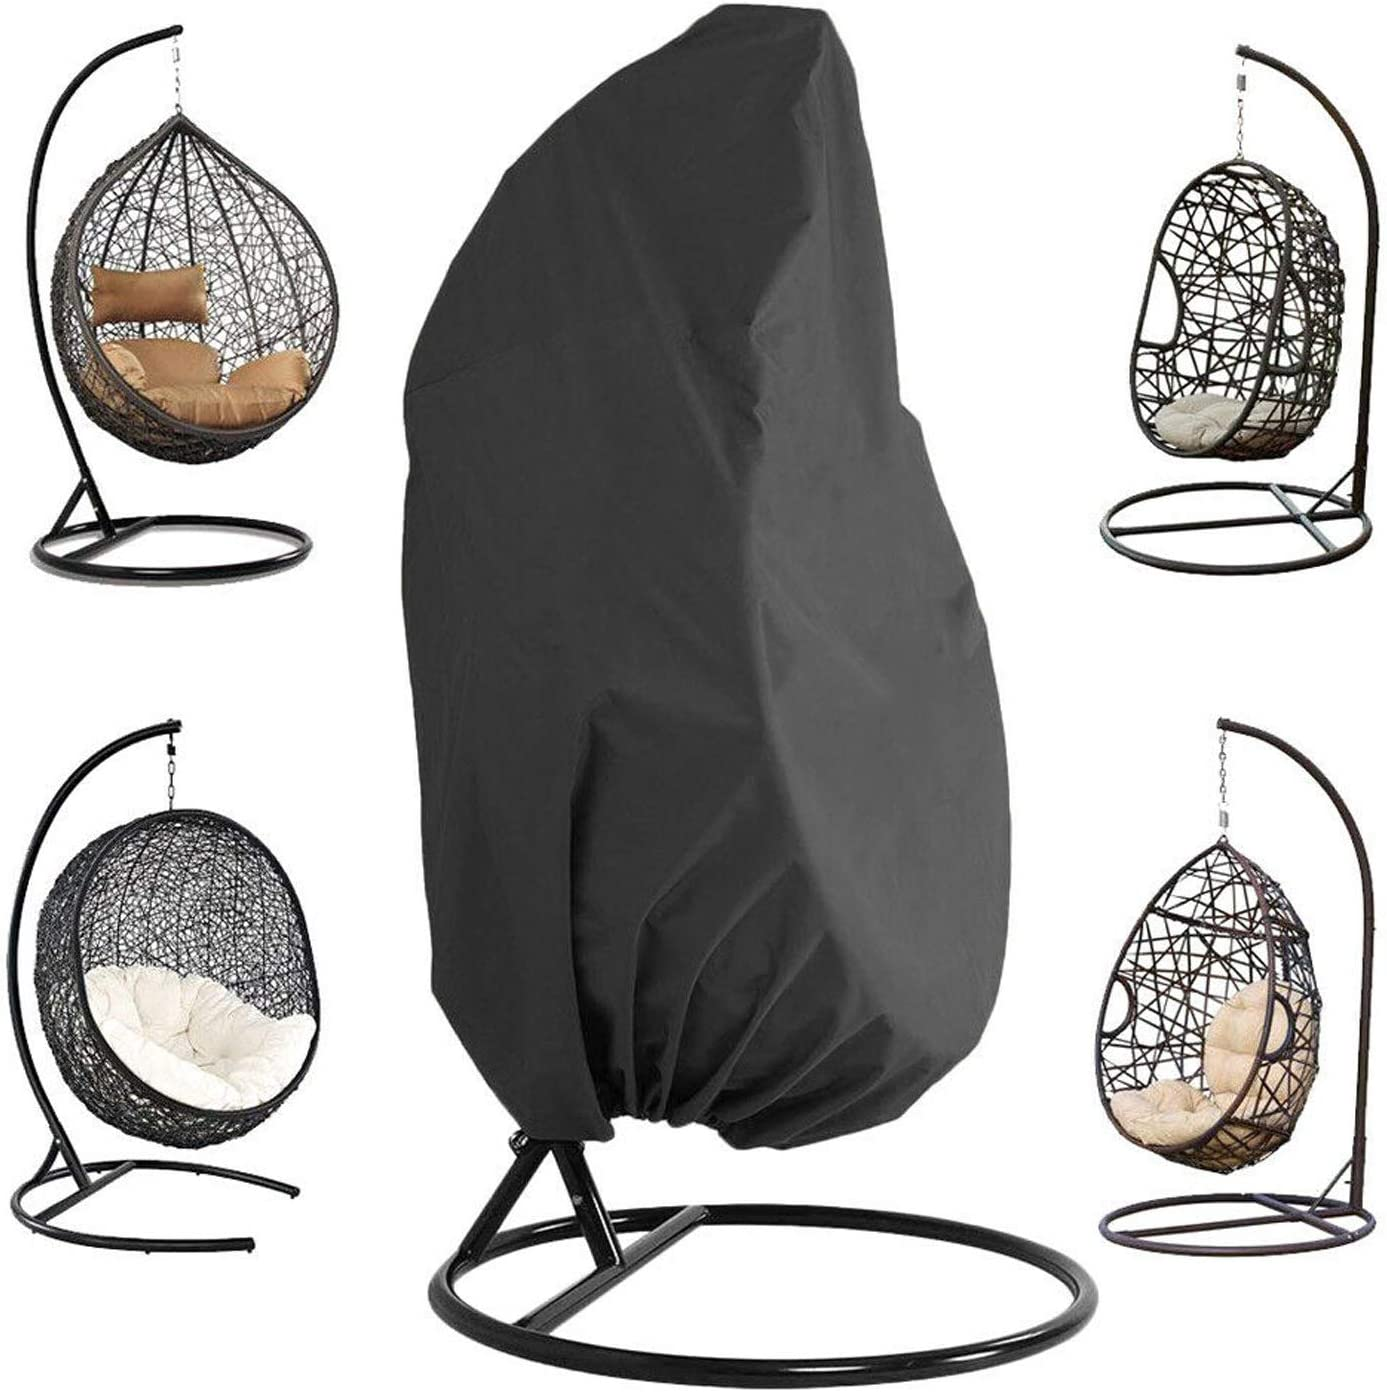 Quality inspection ConPus Patio Hanging Chair Cover unisex Outdoor - Eg Waterproof